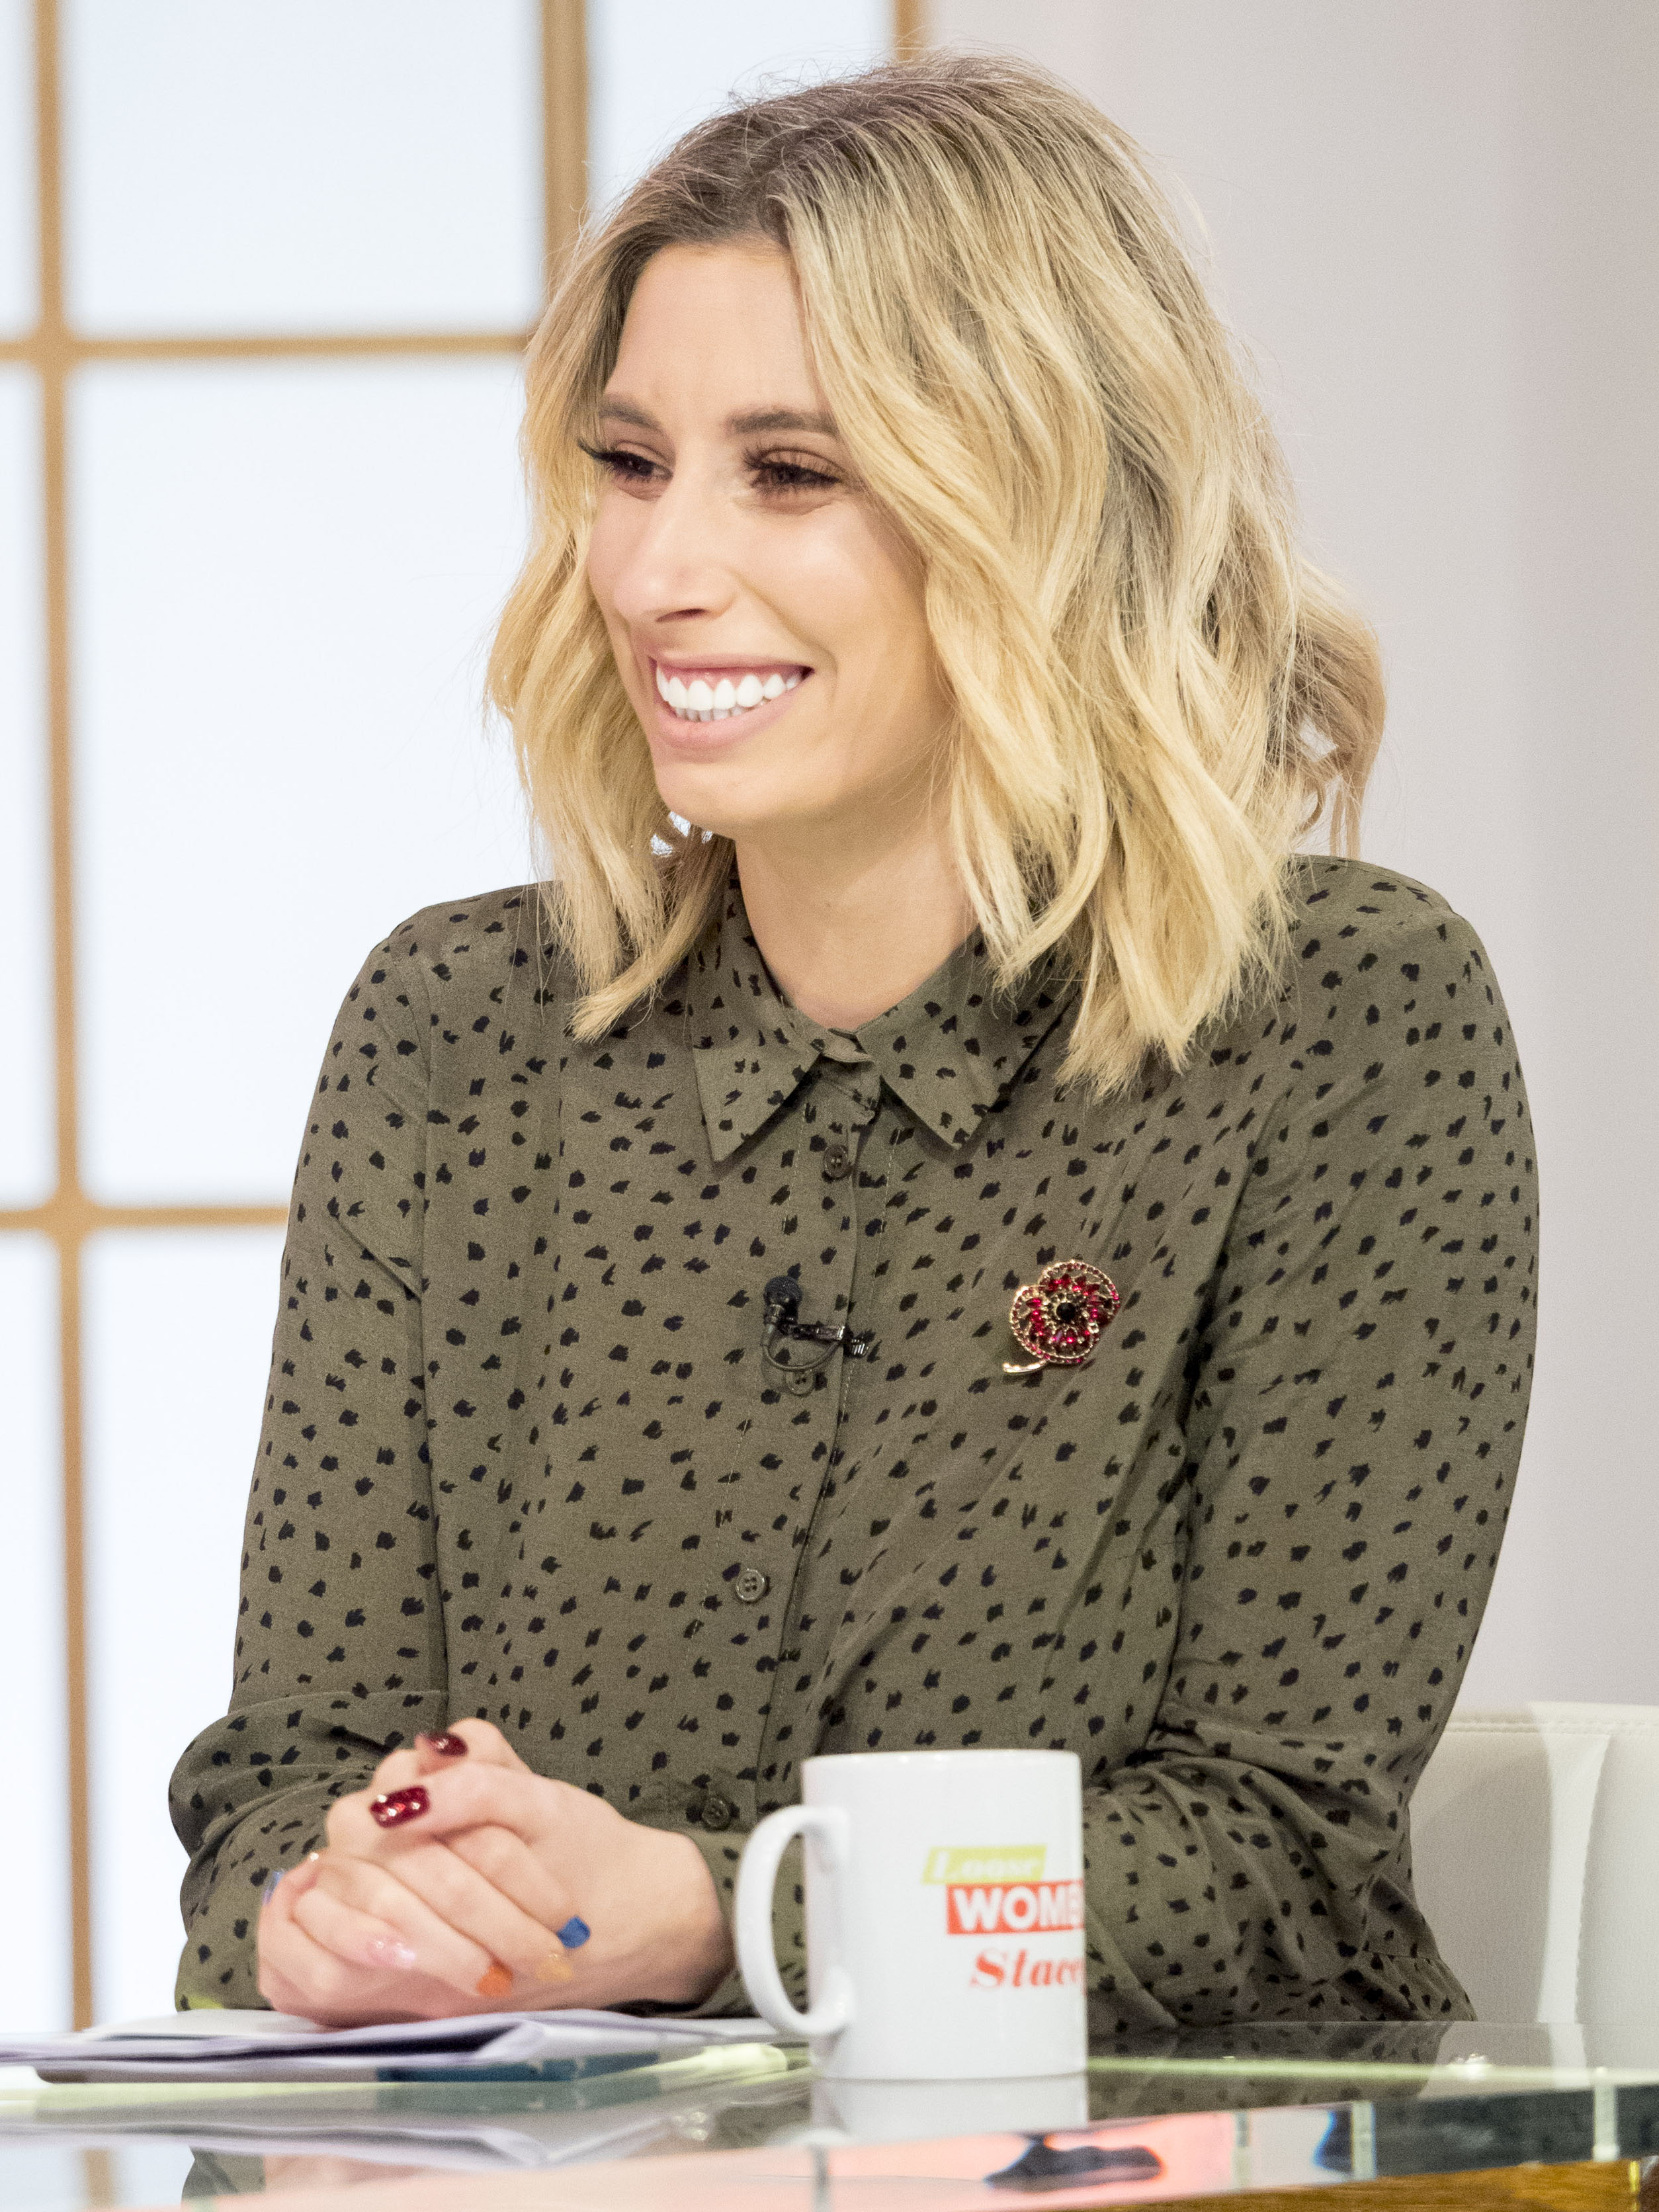 'Spots are so normal!' Stacey Solomon's makeup free pic praised by fans